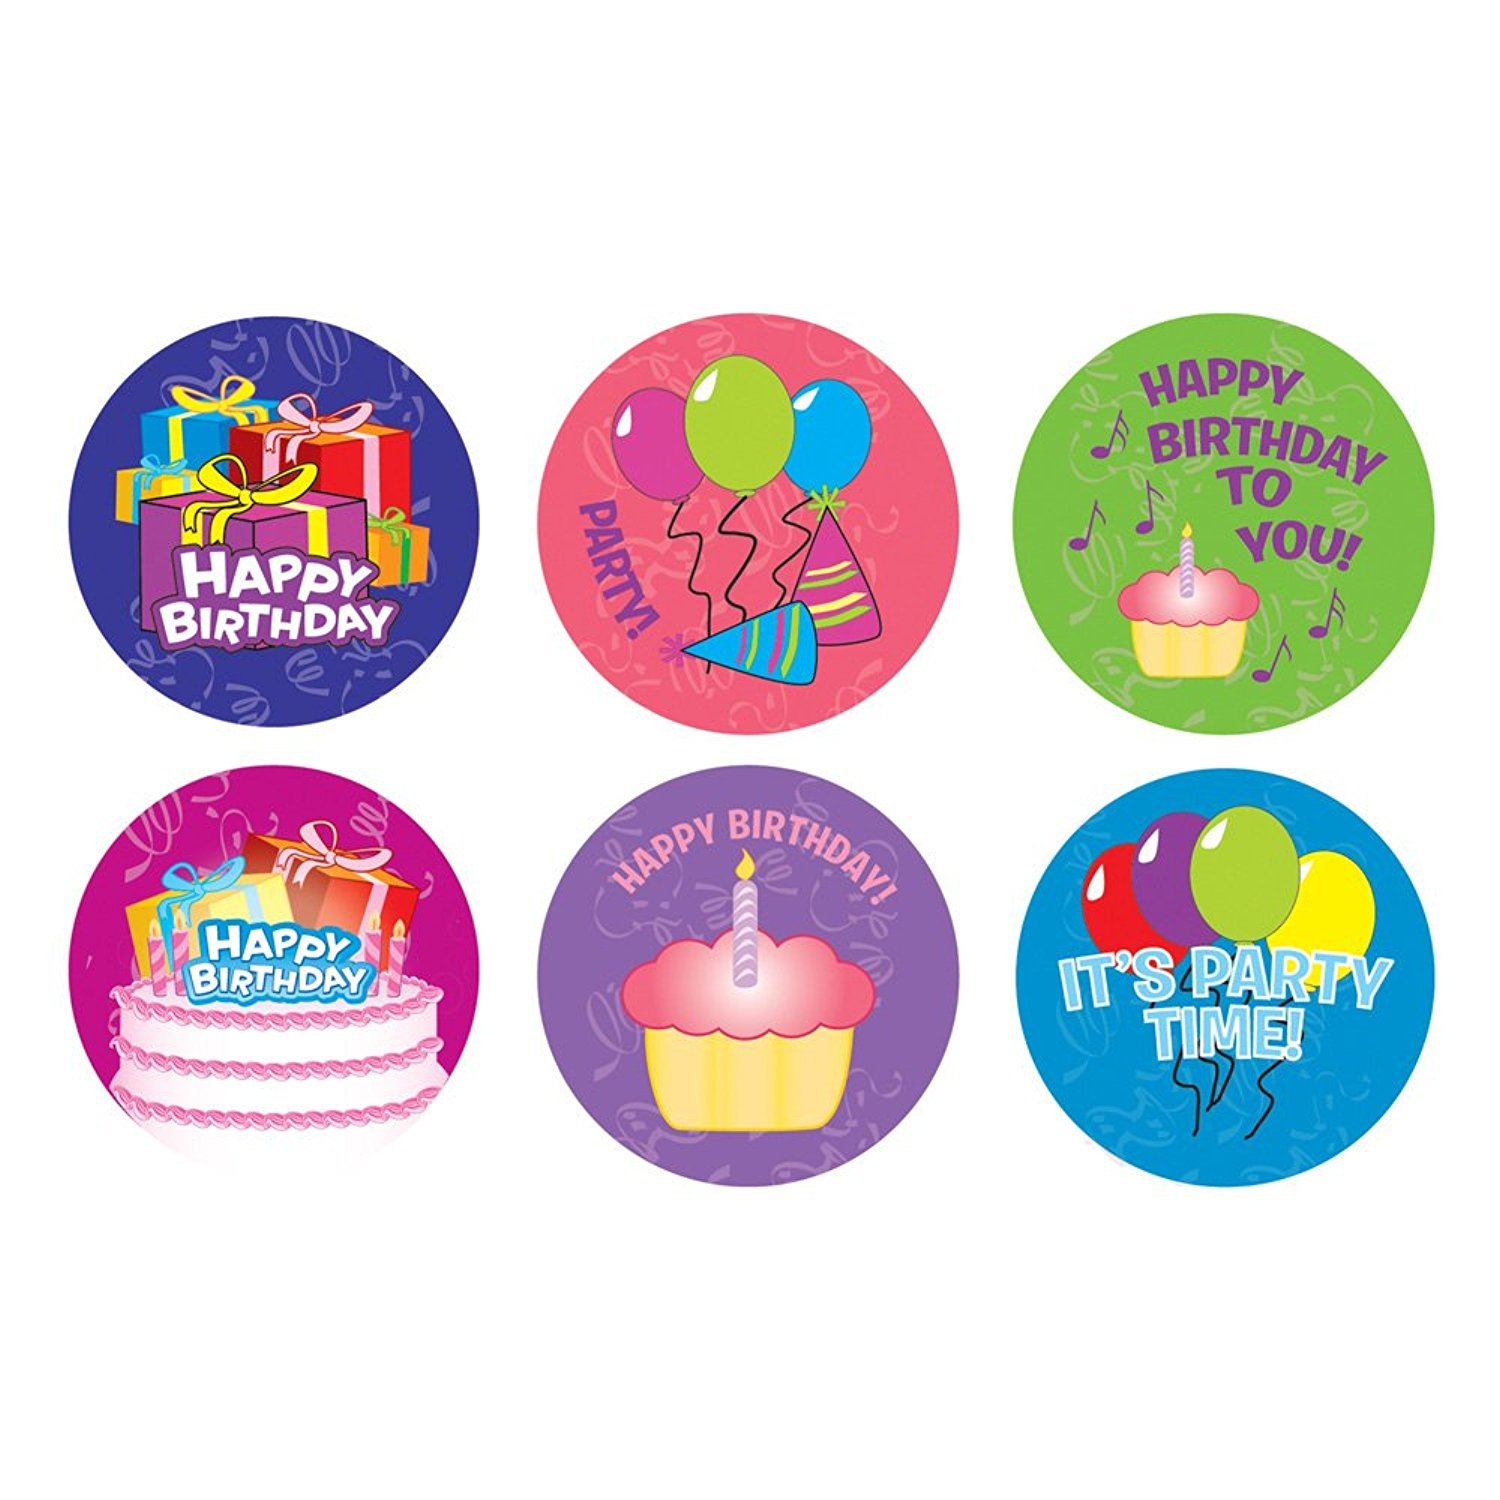 birthday stickers images ; 61ftKPEzkcL